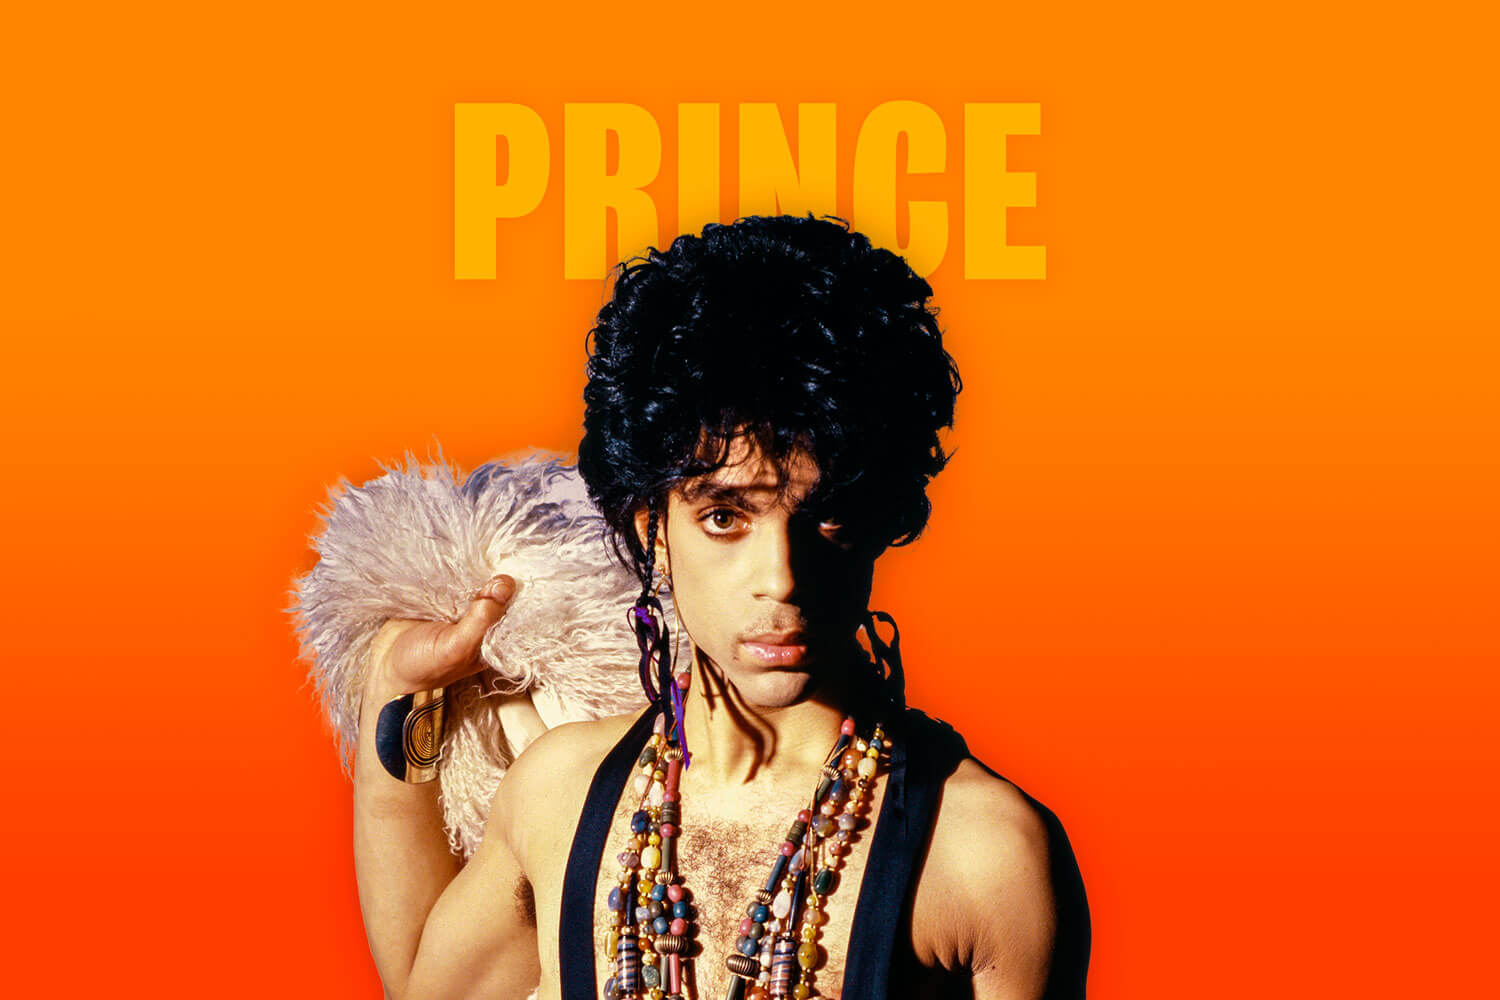 Shop Prince products